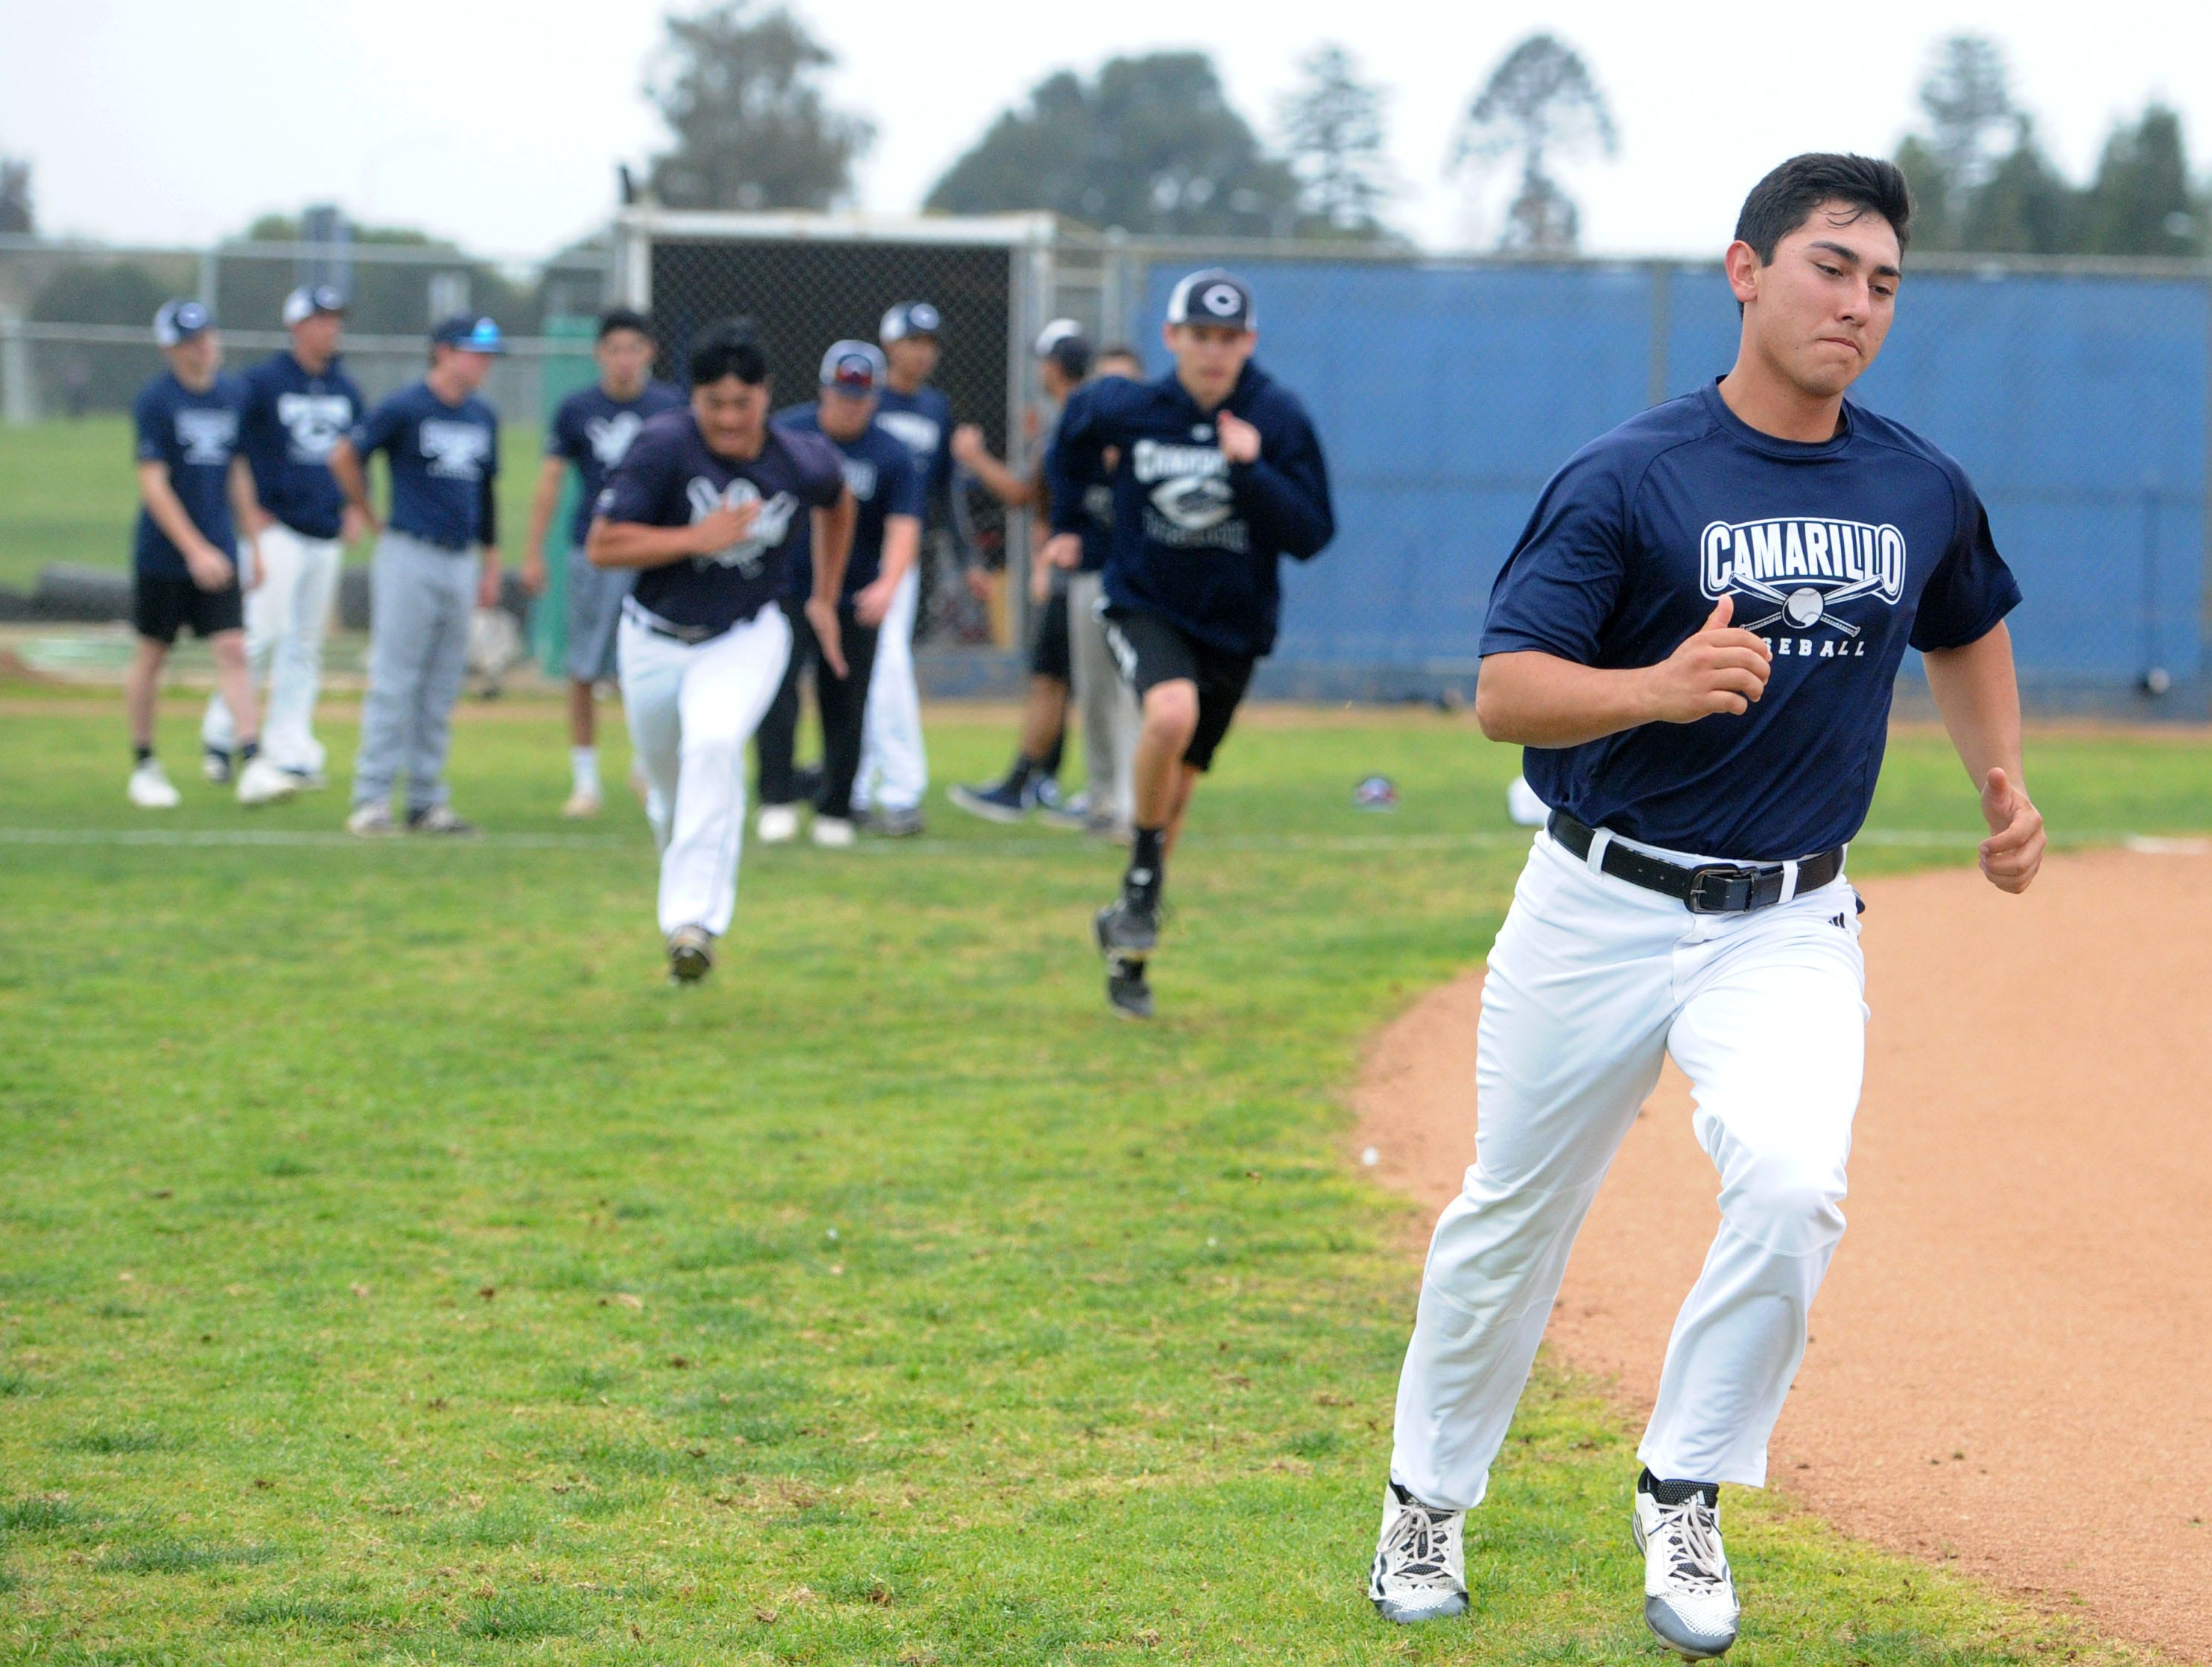 Nick Schnopp and his teammates run some sprints around the field during Camarillo High's baseball practice Wednesday.